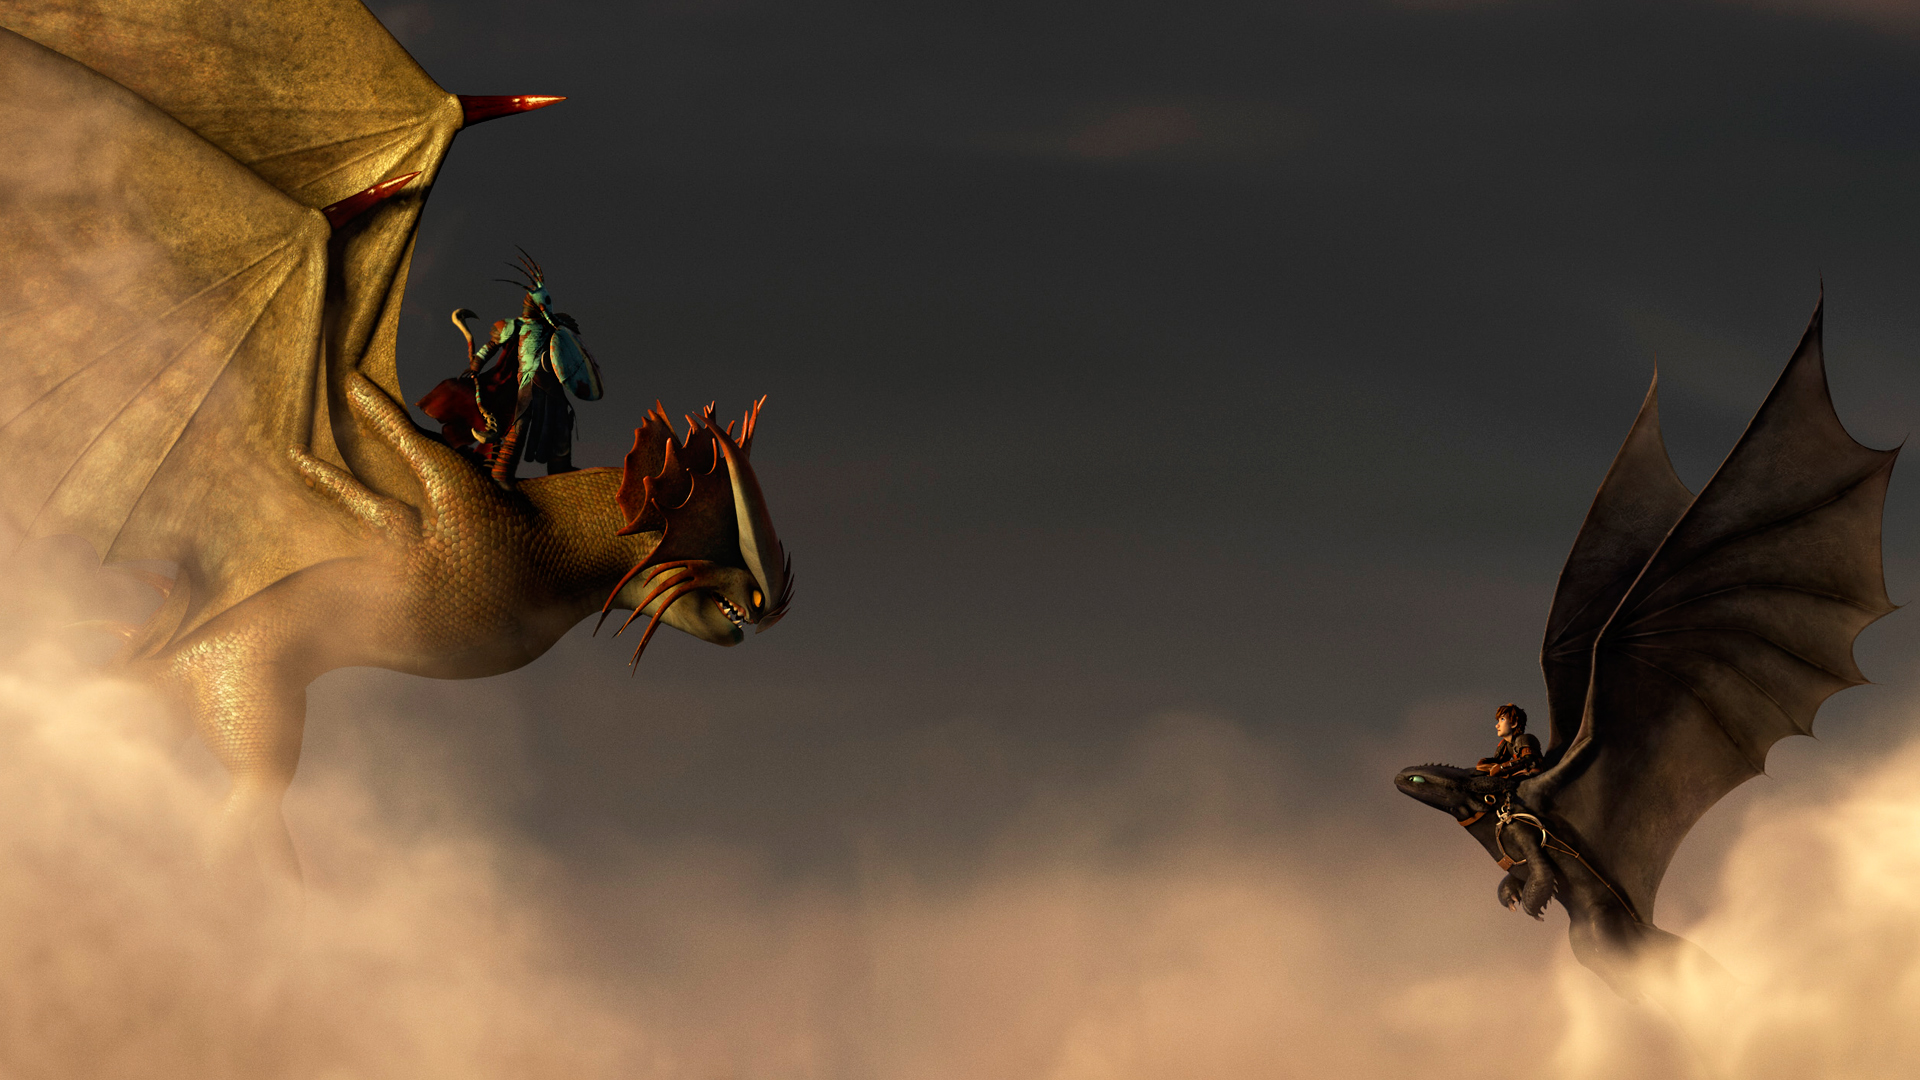 how to train your dragon 2 movie 0i hd wallpaper